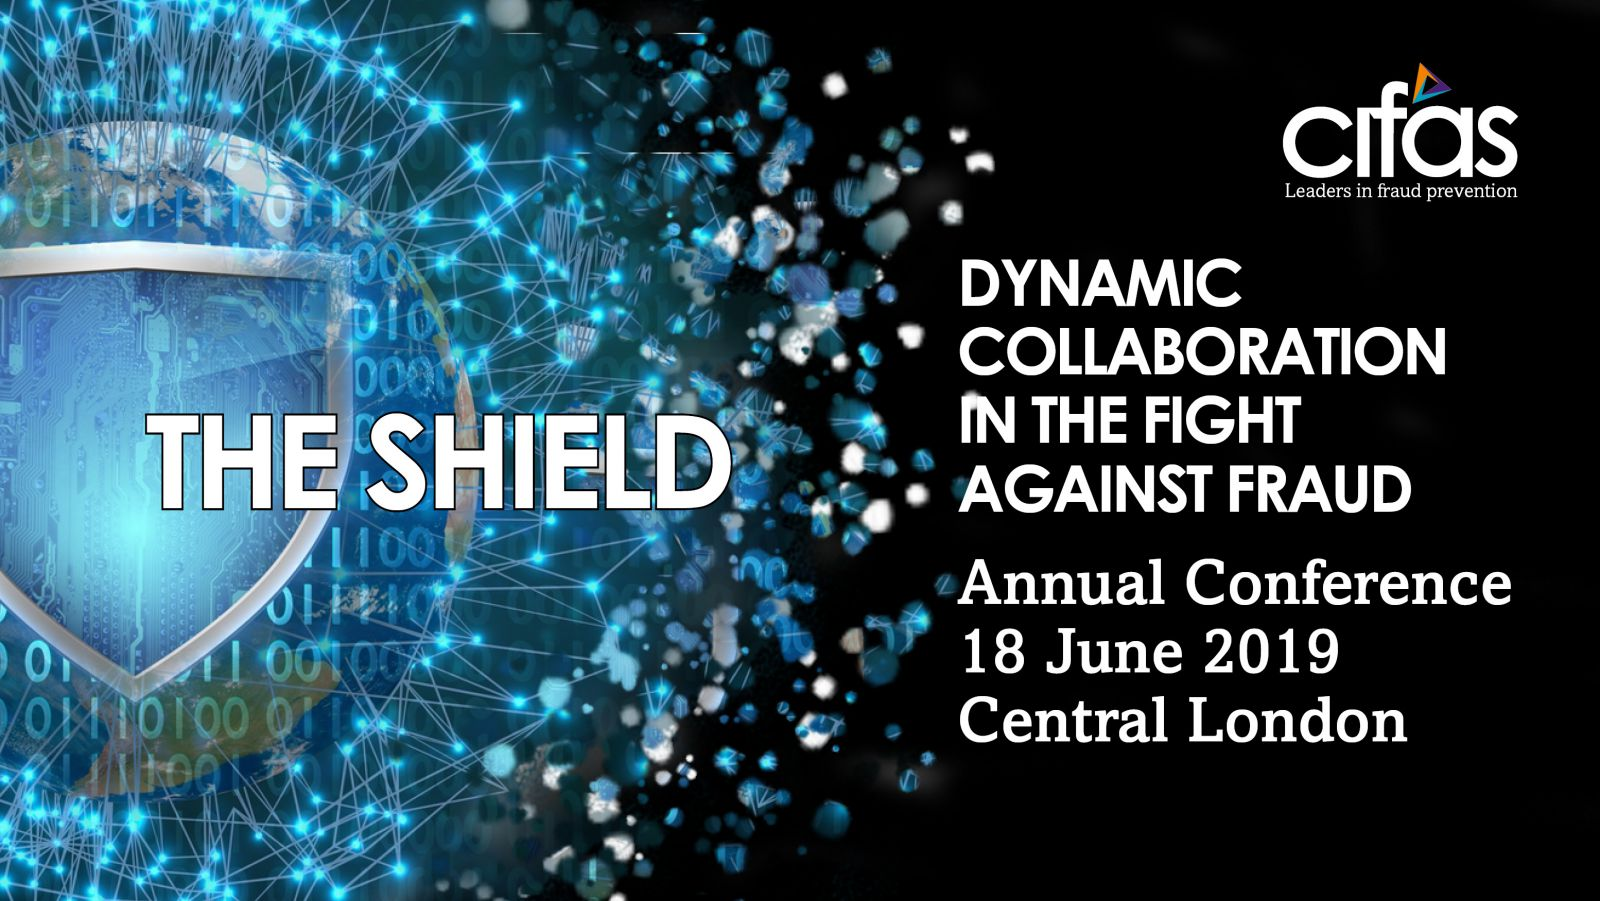 Dynamic Collaboration in the Fight Against Fraud: Annual Conference